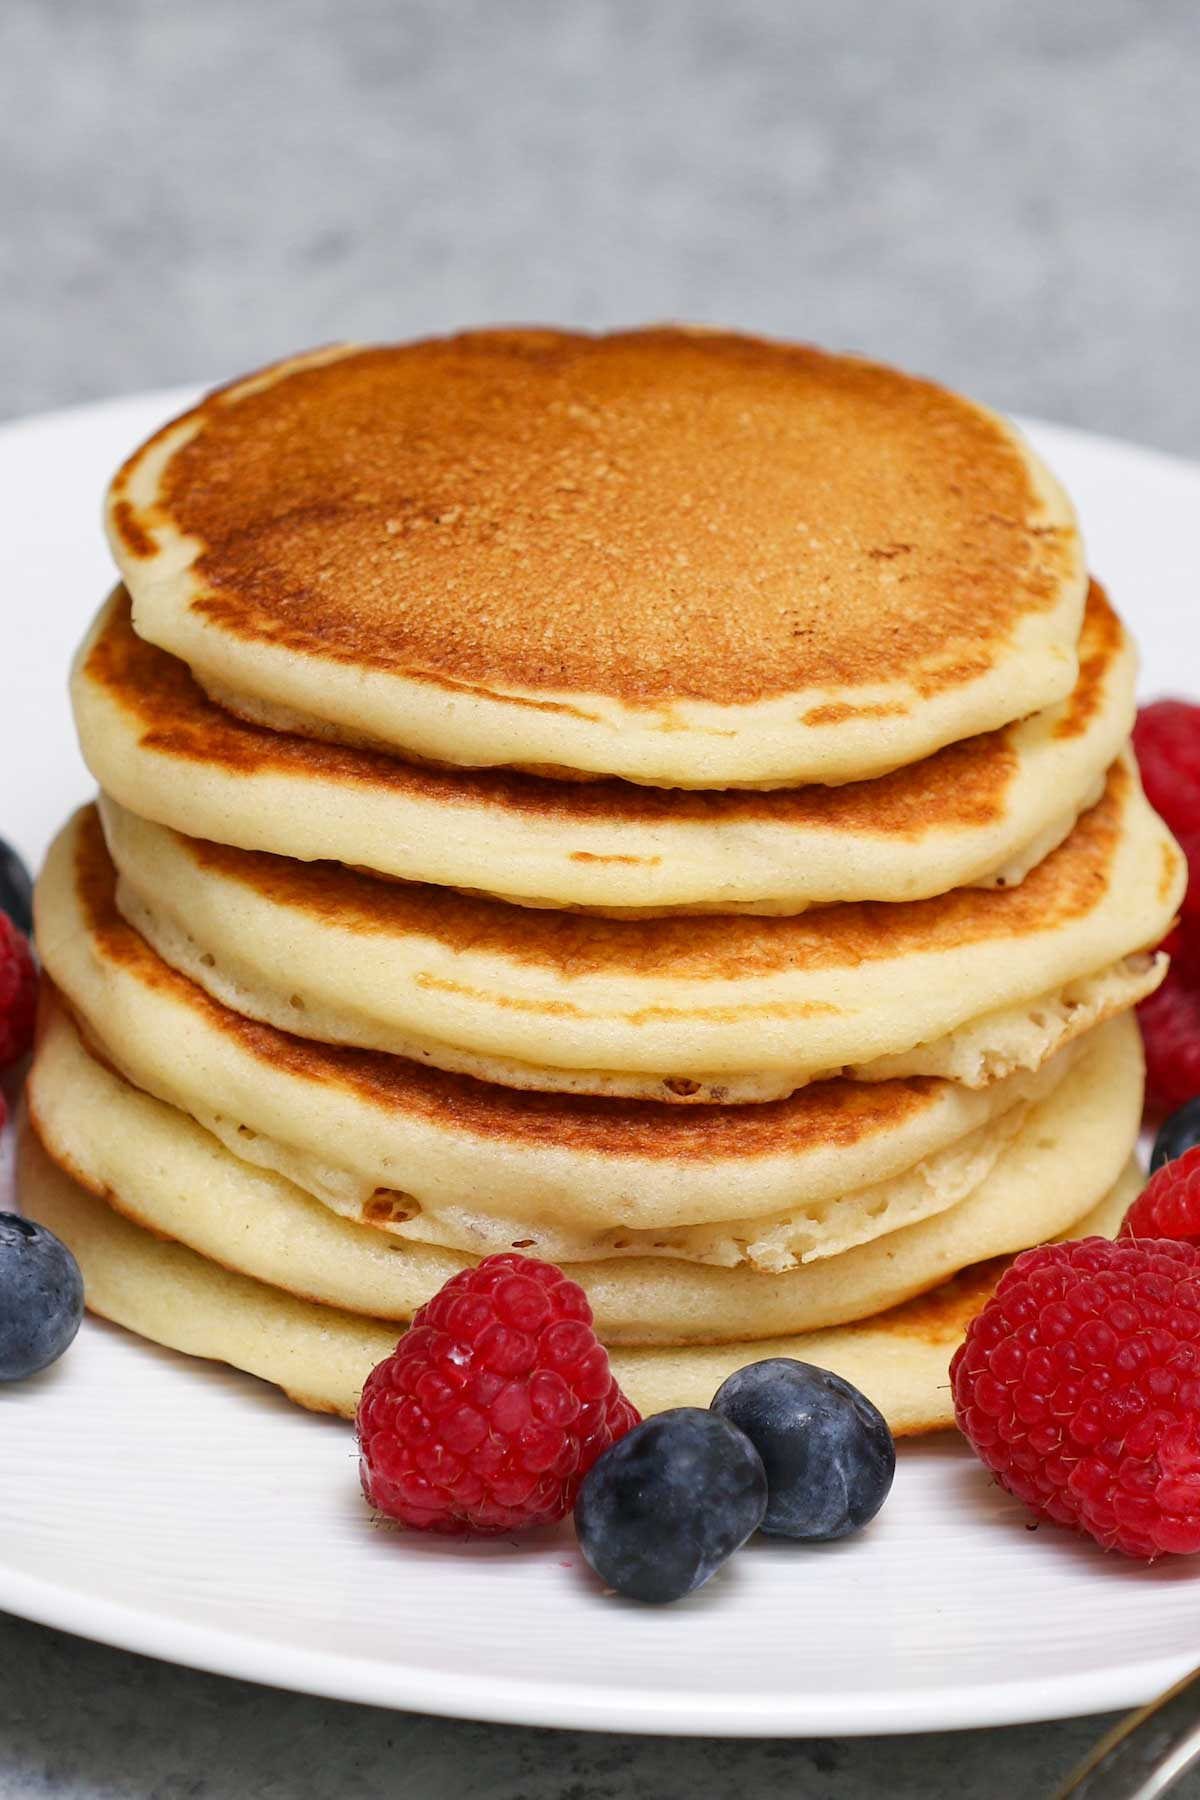 Freshly cooked griddle cakes